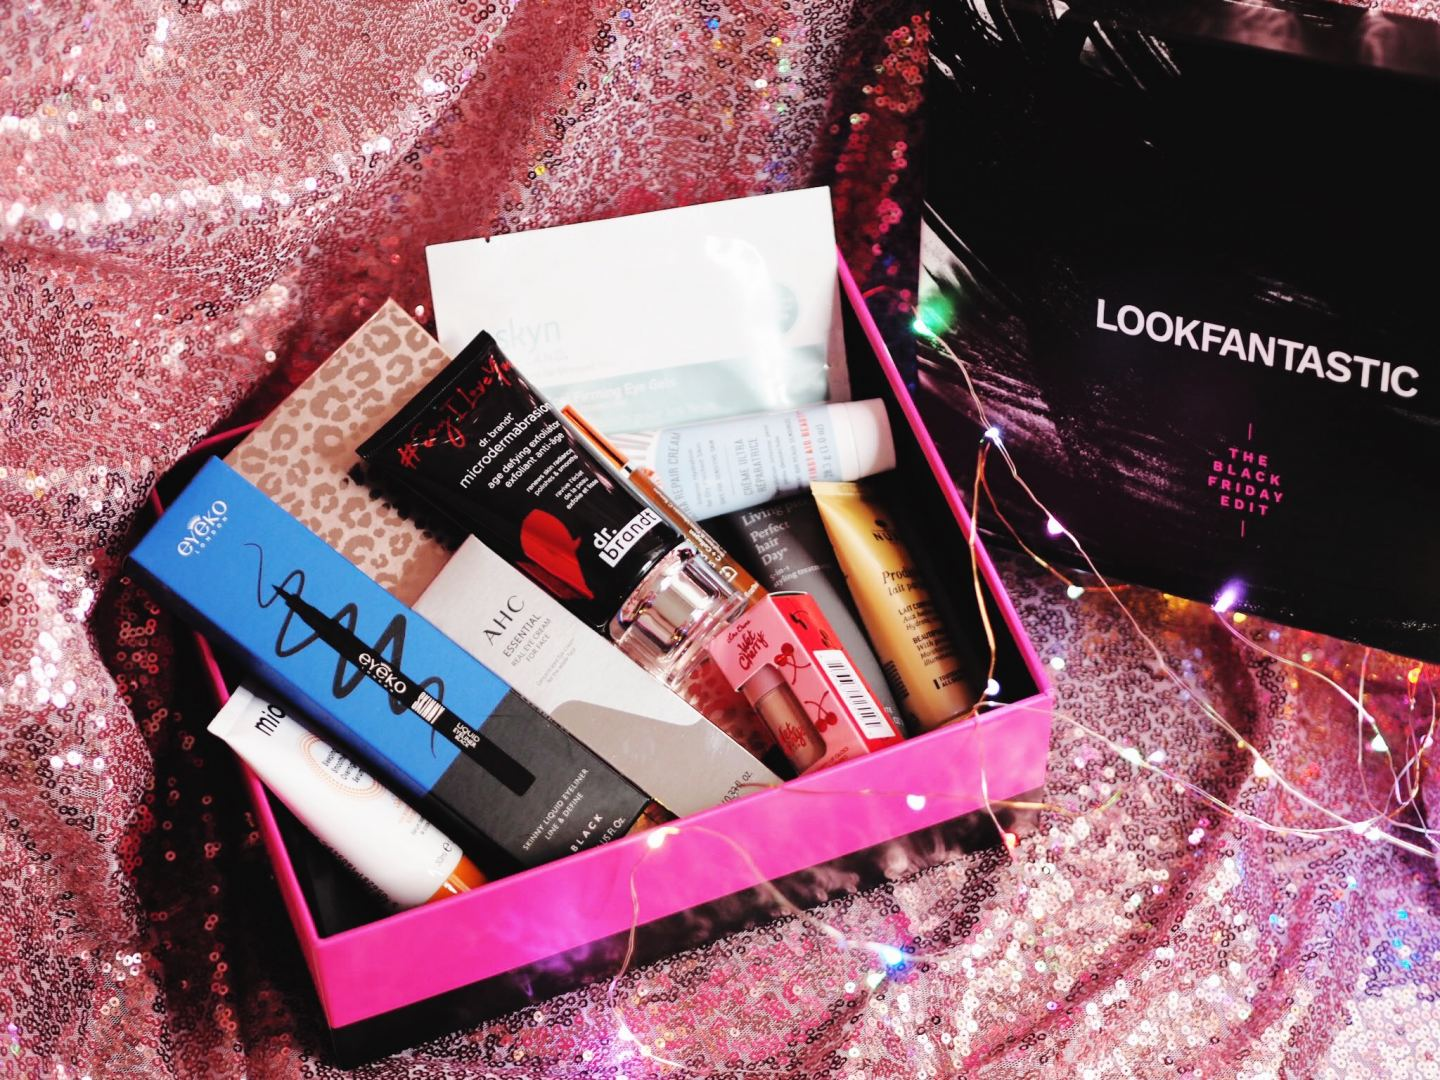 Look Fantastic Black Friday Beauty Box! review